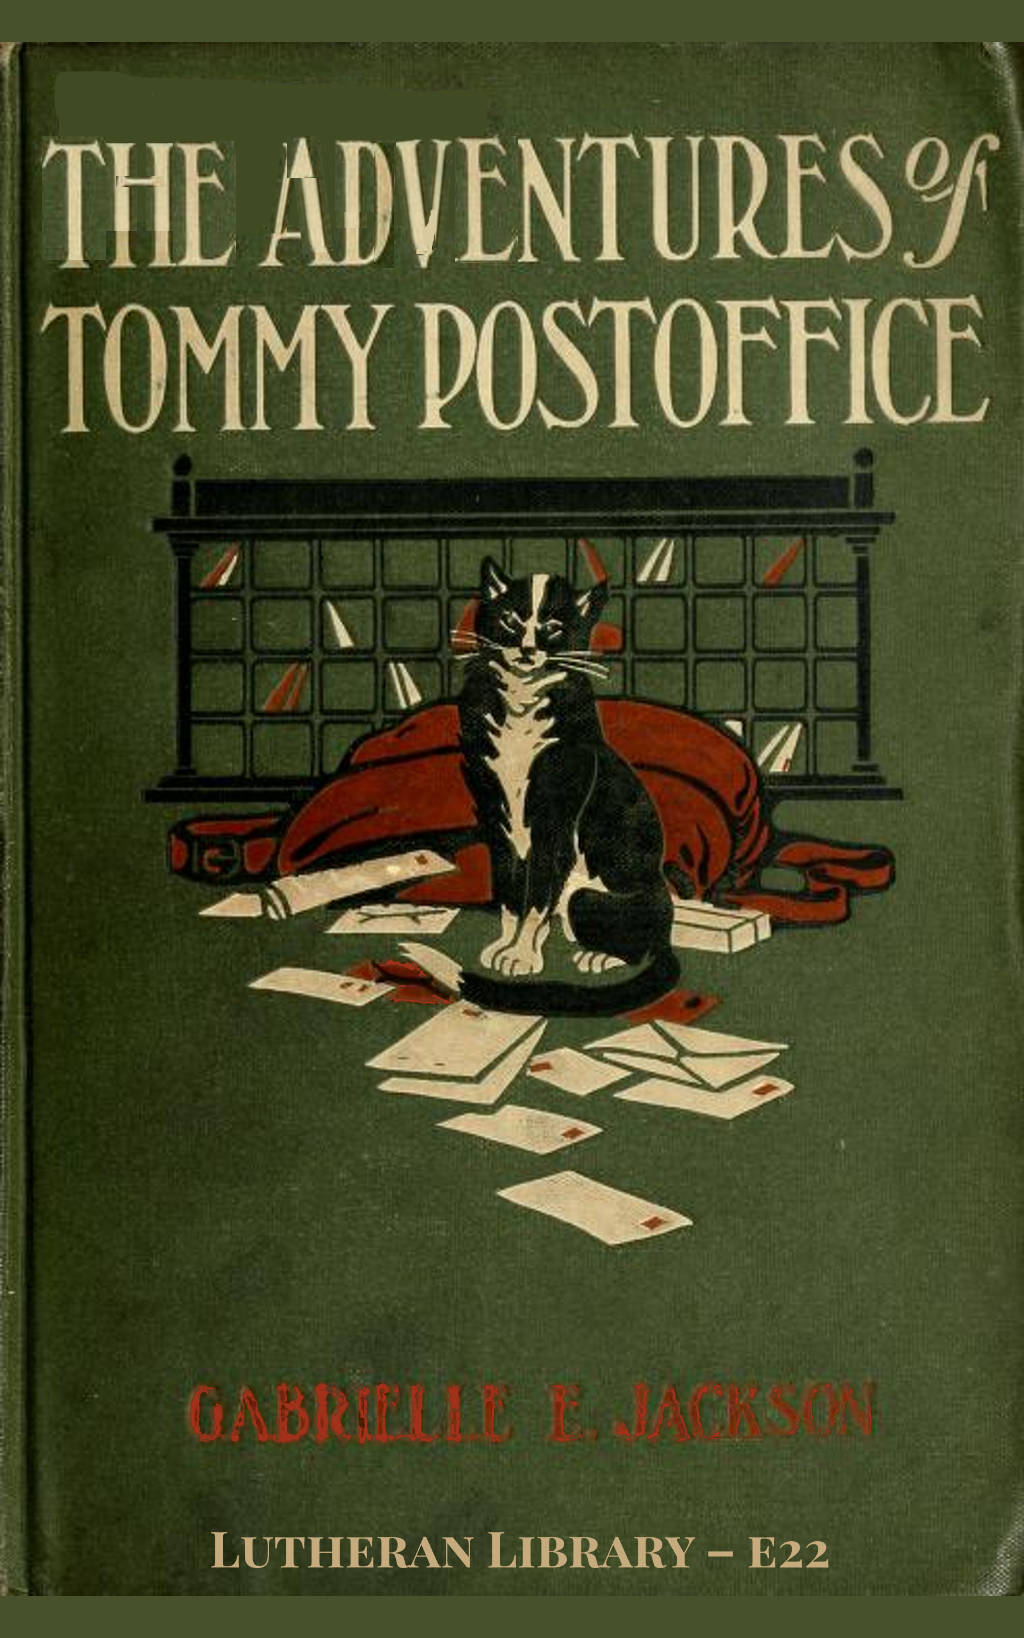 The Adventures Of Tommy Postoffice: The True Story Of A Cat by Gabrielle Emilie Jackson